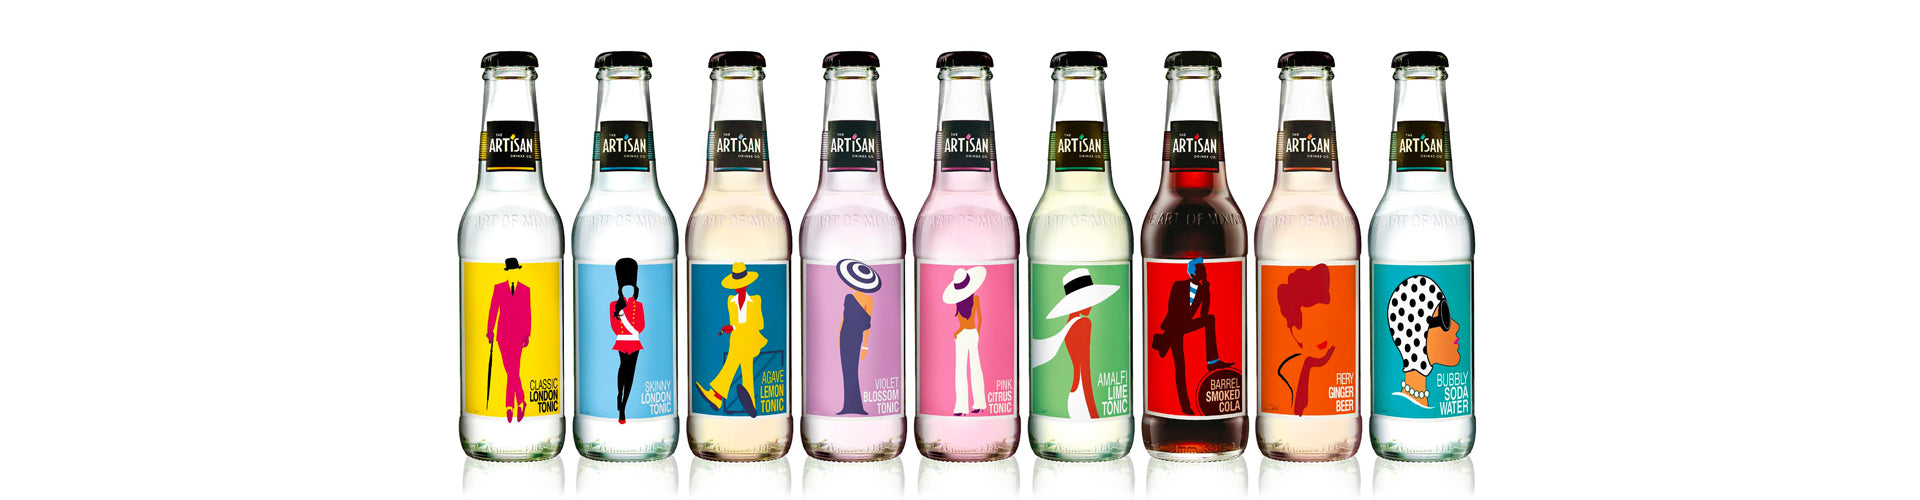 The Artisan Drinks Co. Line-Up of 9 Mixers in Bottle